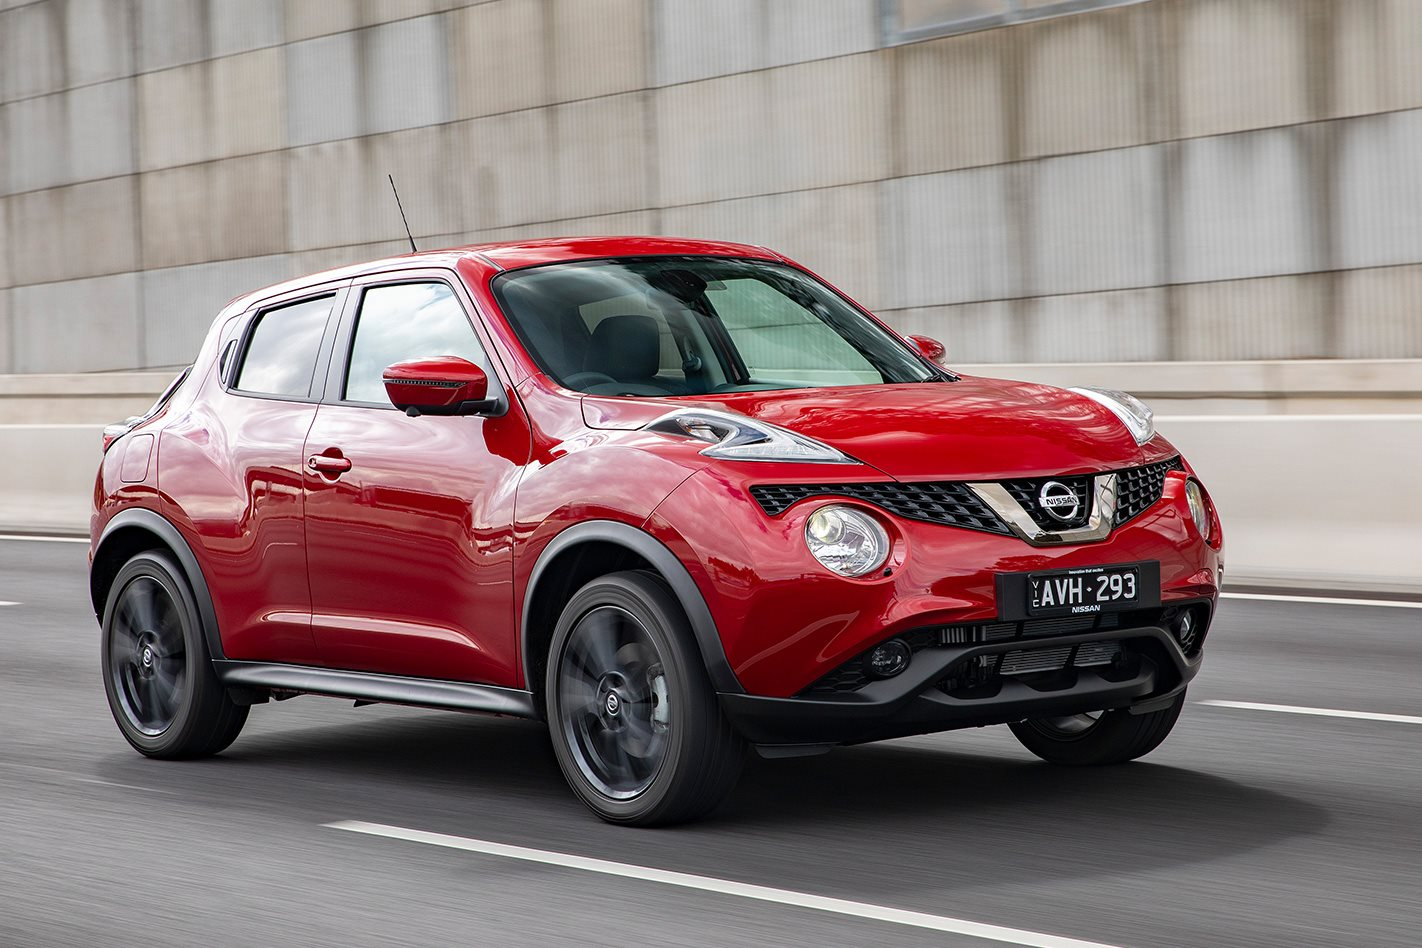 2018 nissan juke scores cosmetic upgrades juke nismo. Black Bedroom Furniture Sets. Home Design Ideas